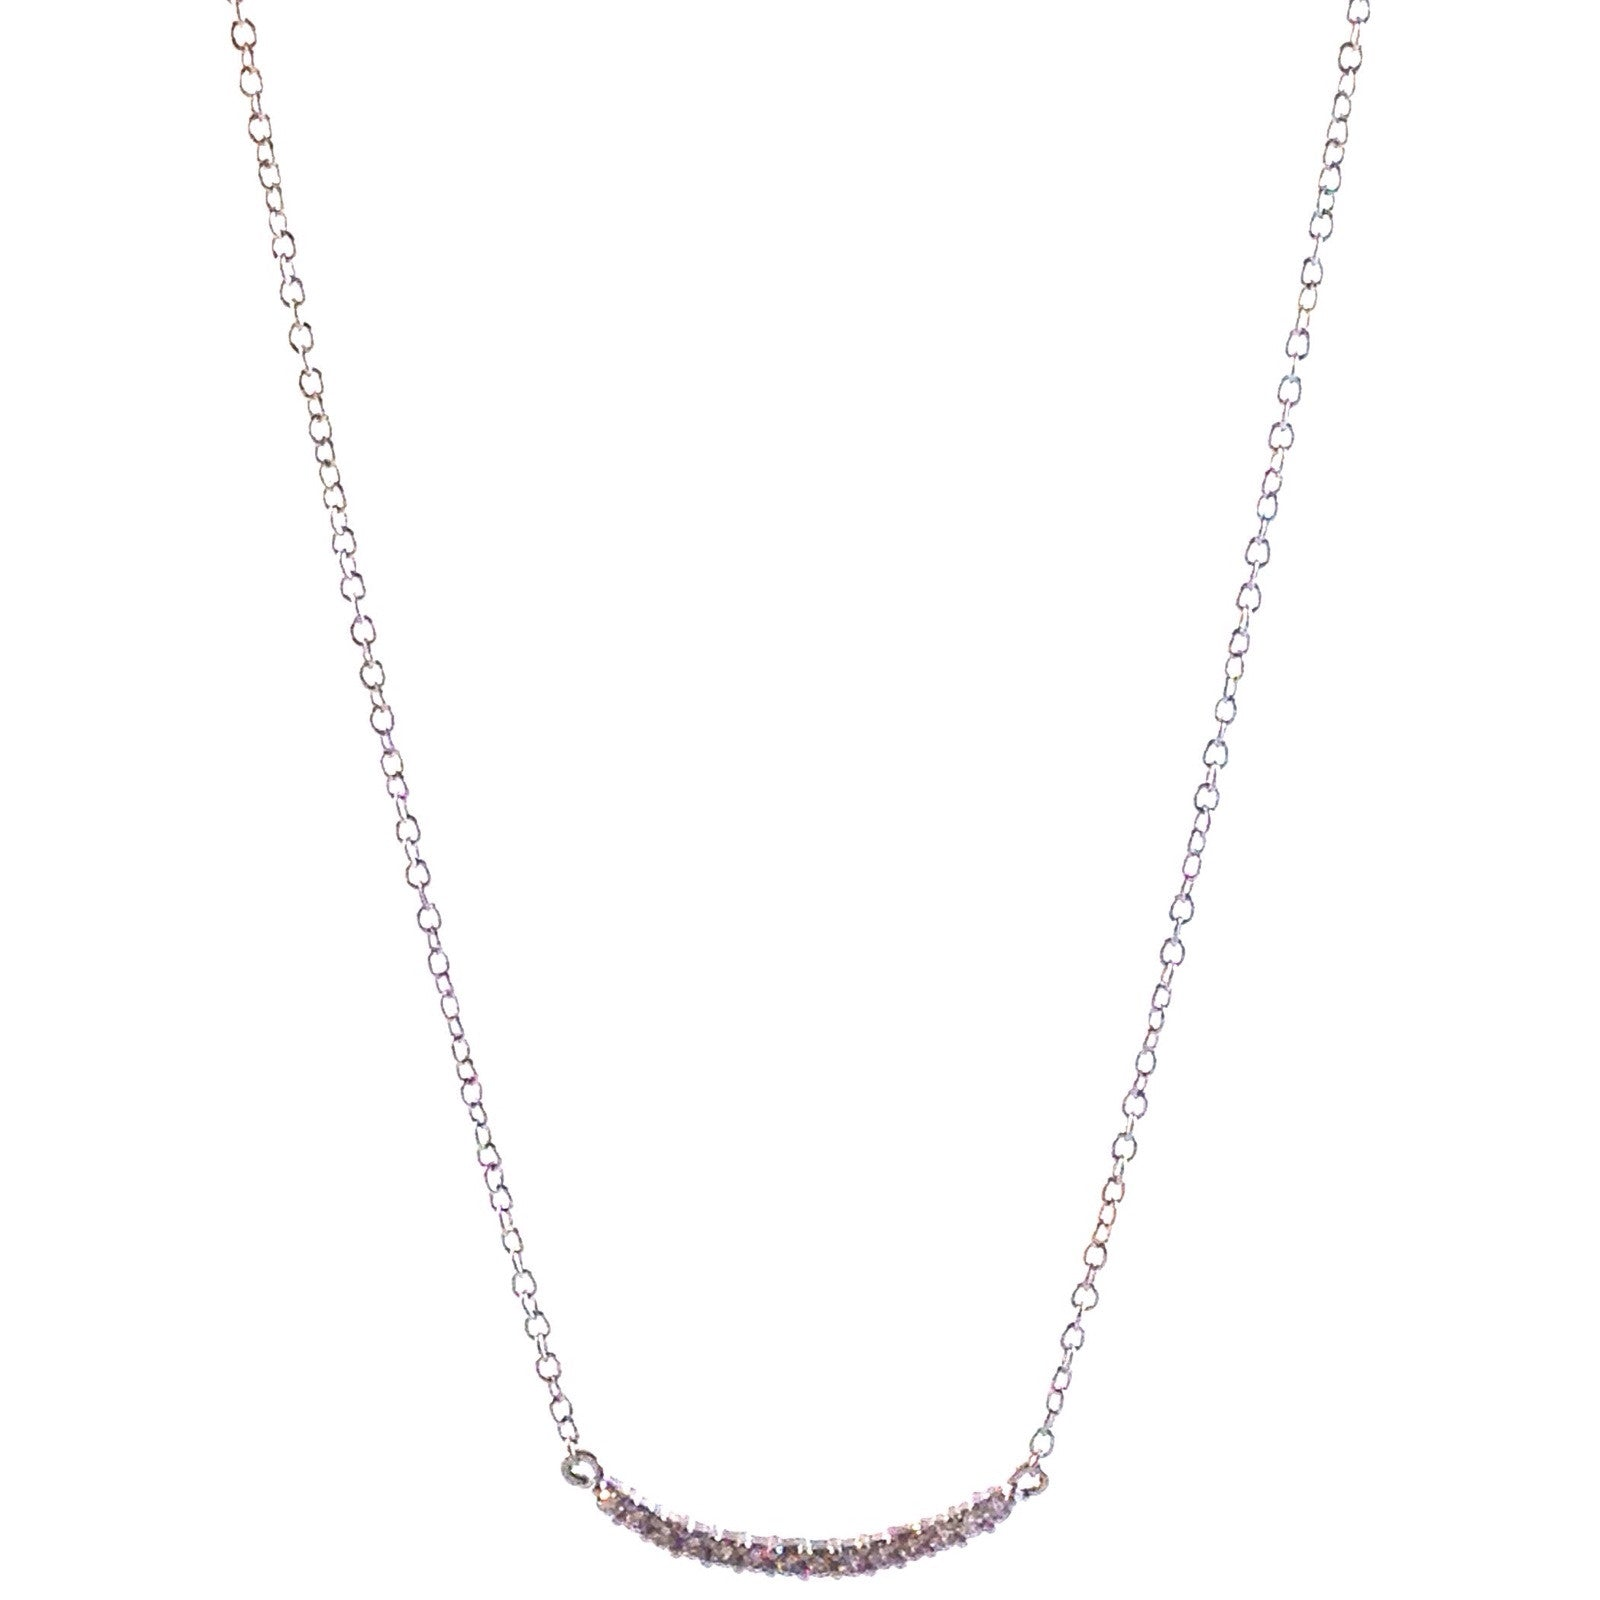 Small CZ Bar Necklace, $22 | Sterling Silver| Light Years Jewelry